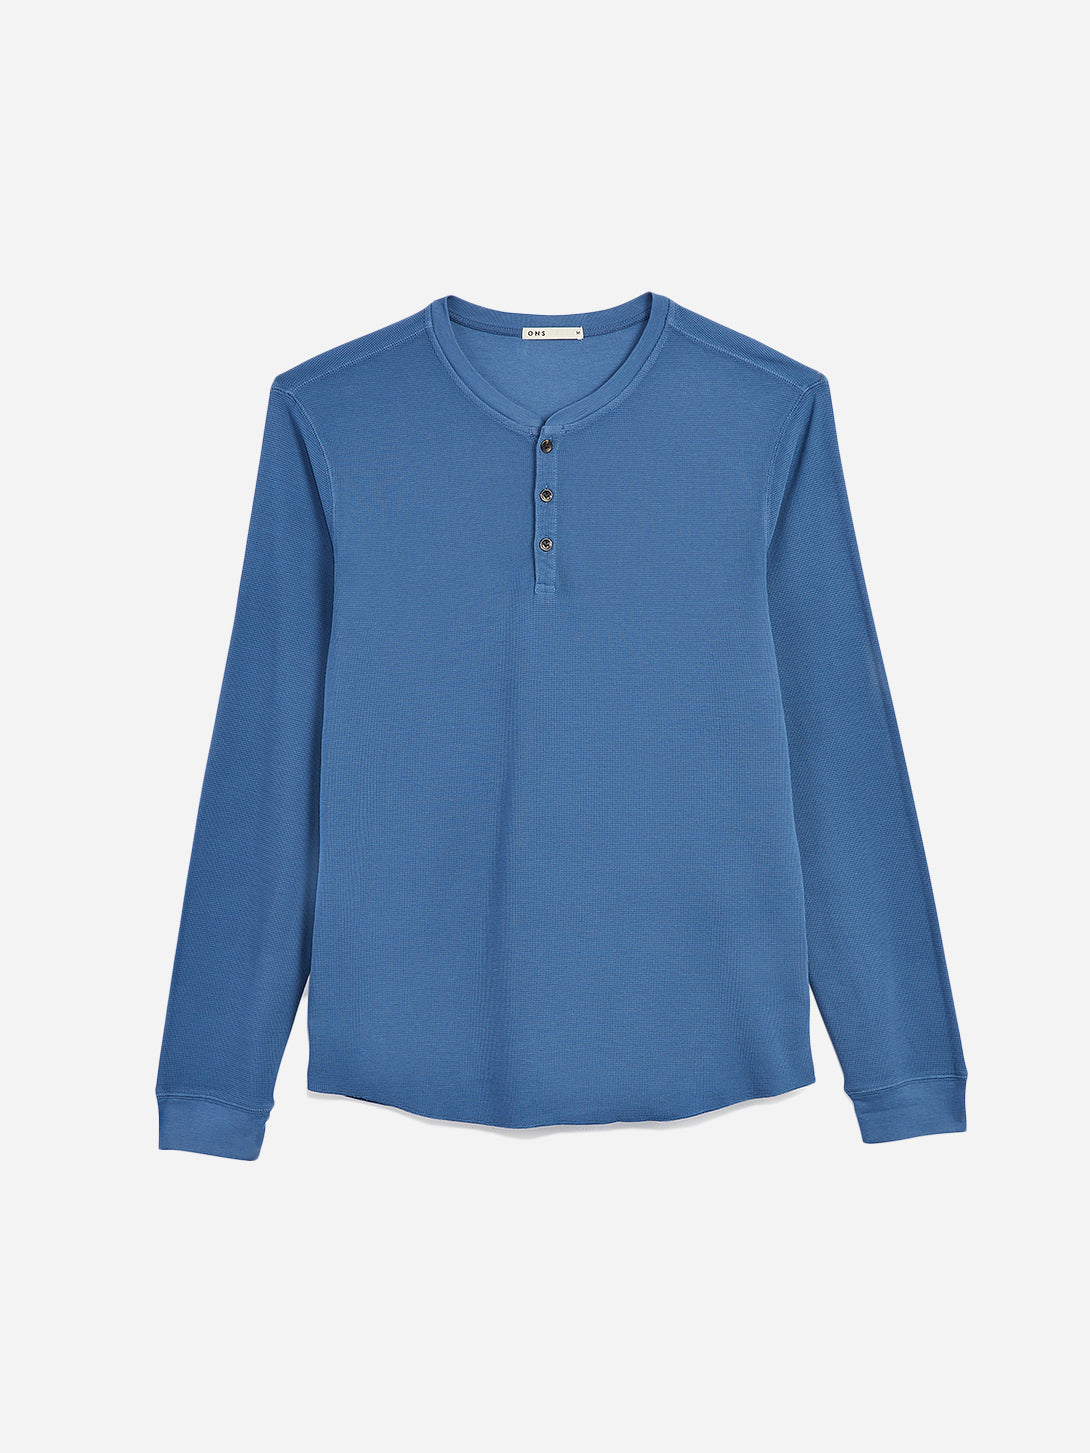 ONS Clothing Men's COURT WAFFLE HENLEY in COBALT BLUE